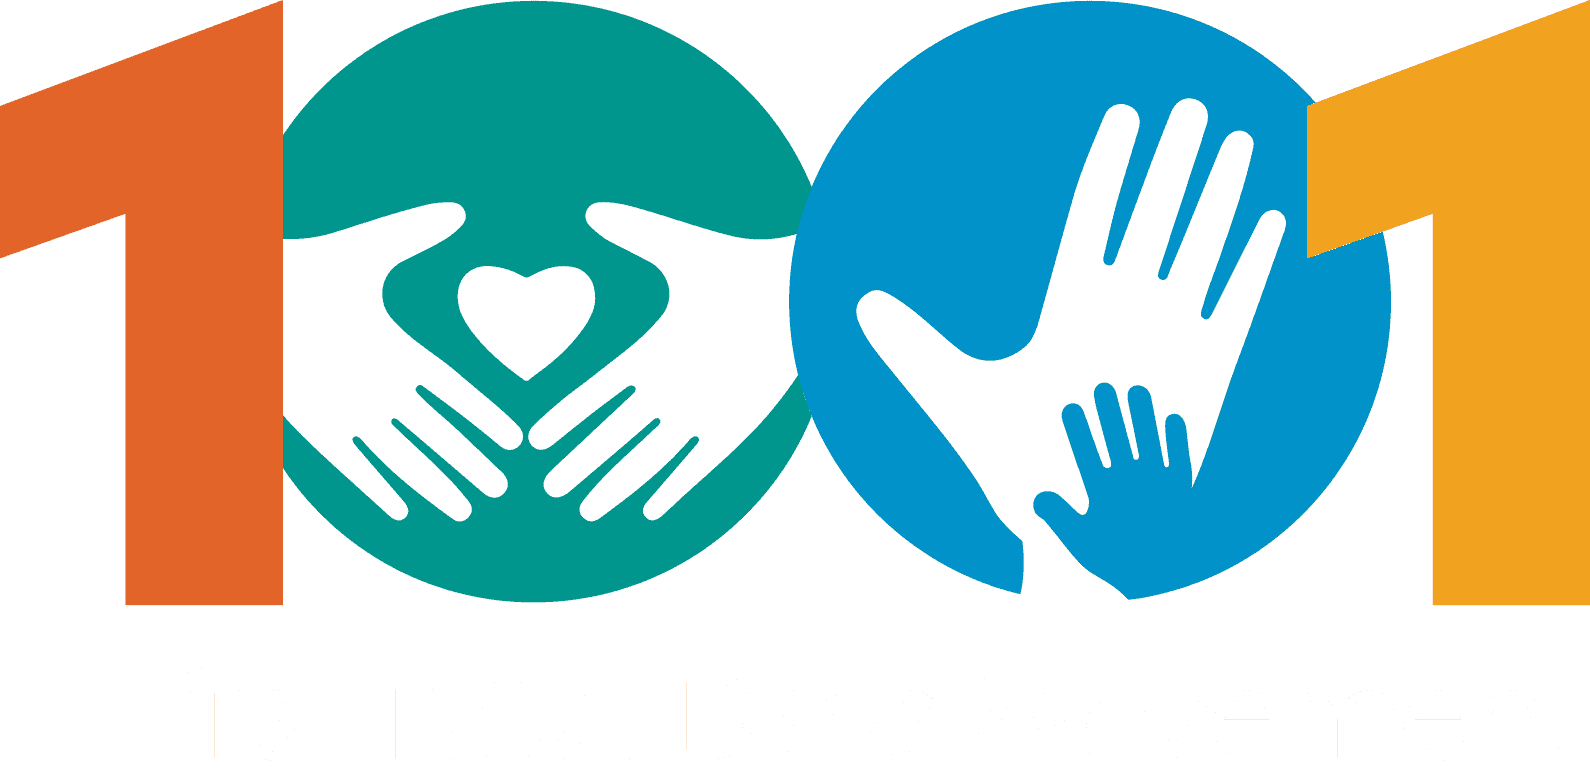 First-1001-Days-Movement-Logo-(Dark-Bkgs)